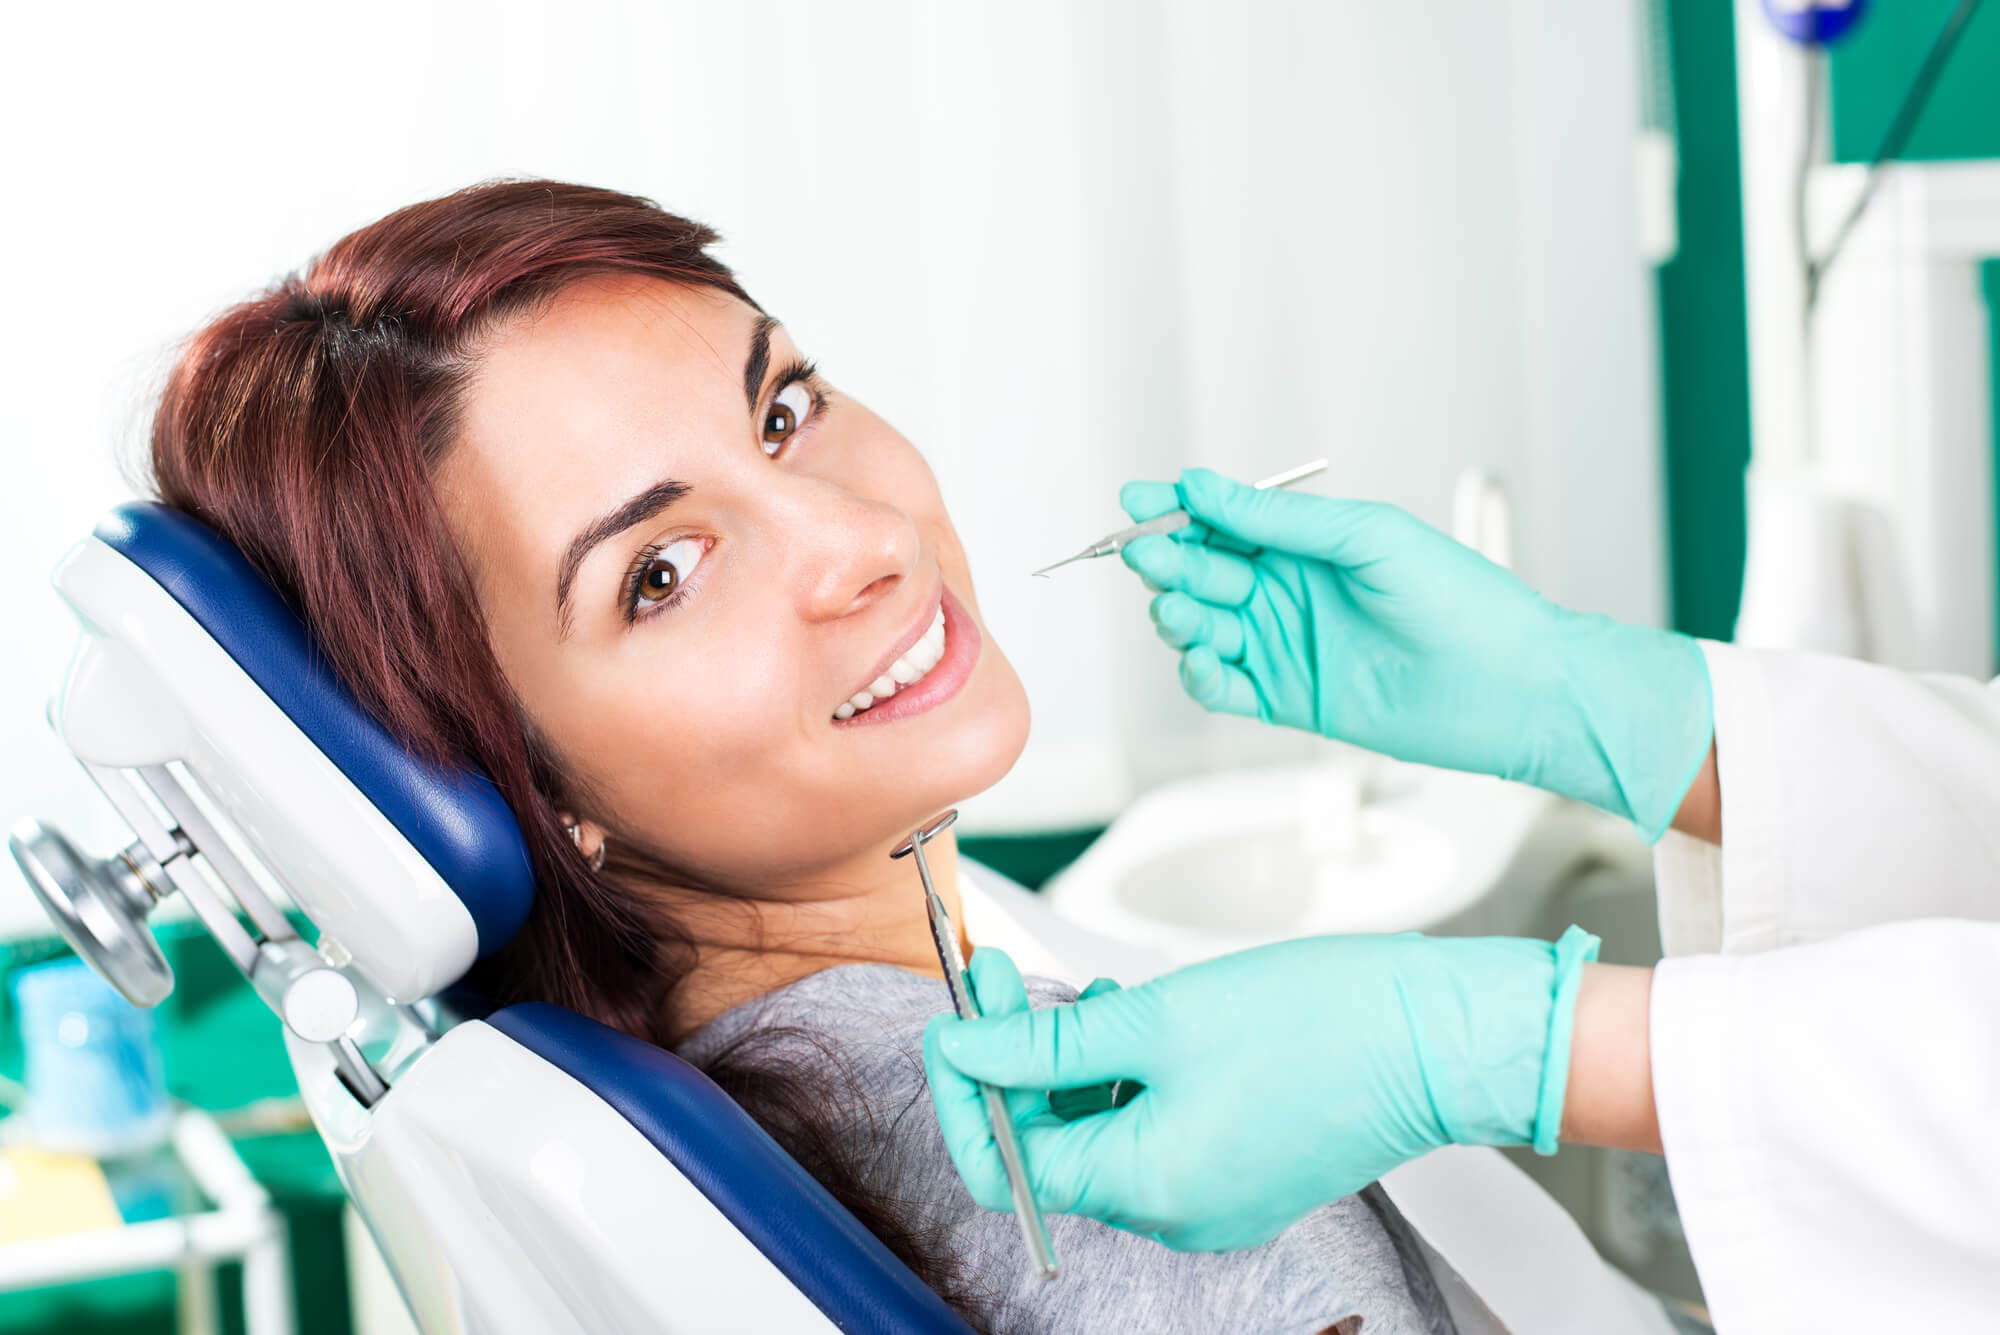 who offers the best dentures Greenville sc?